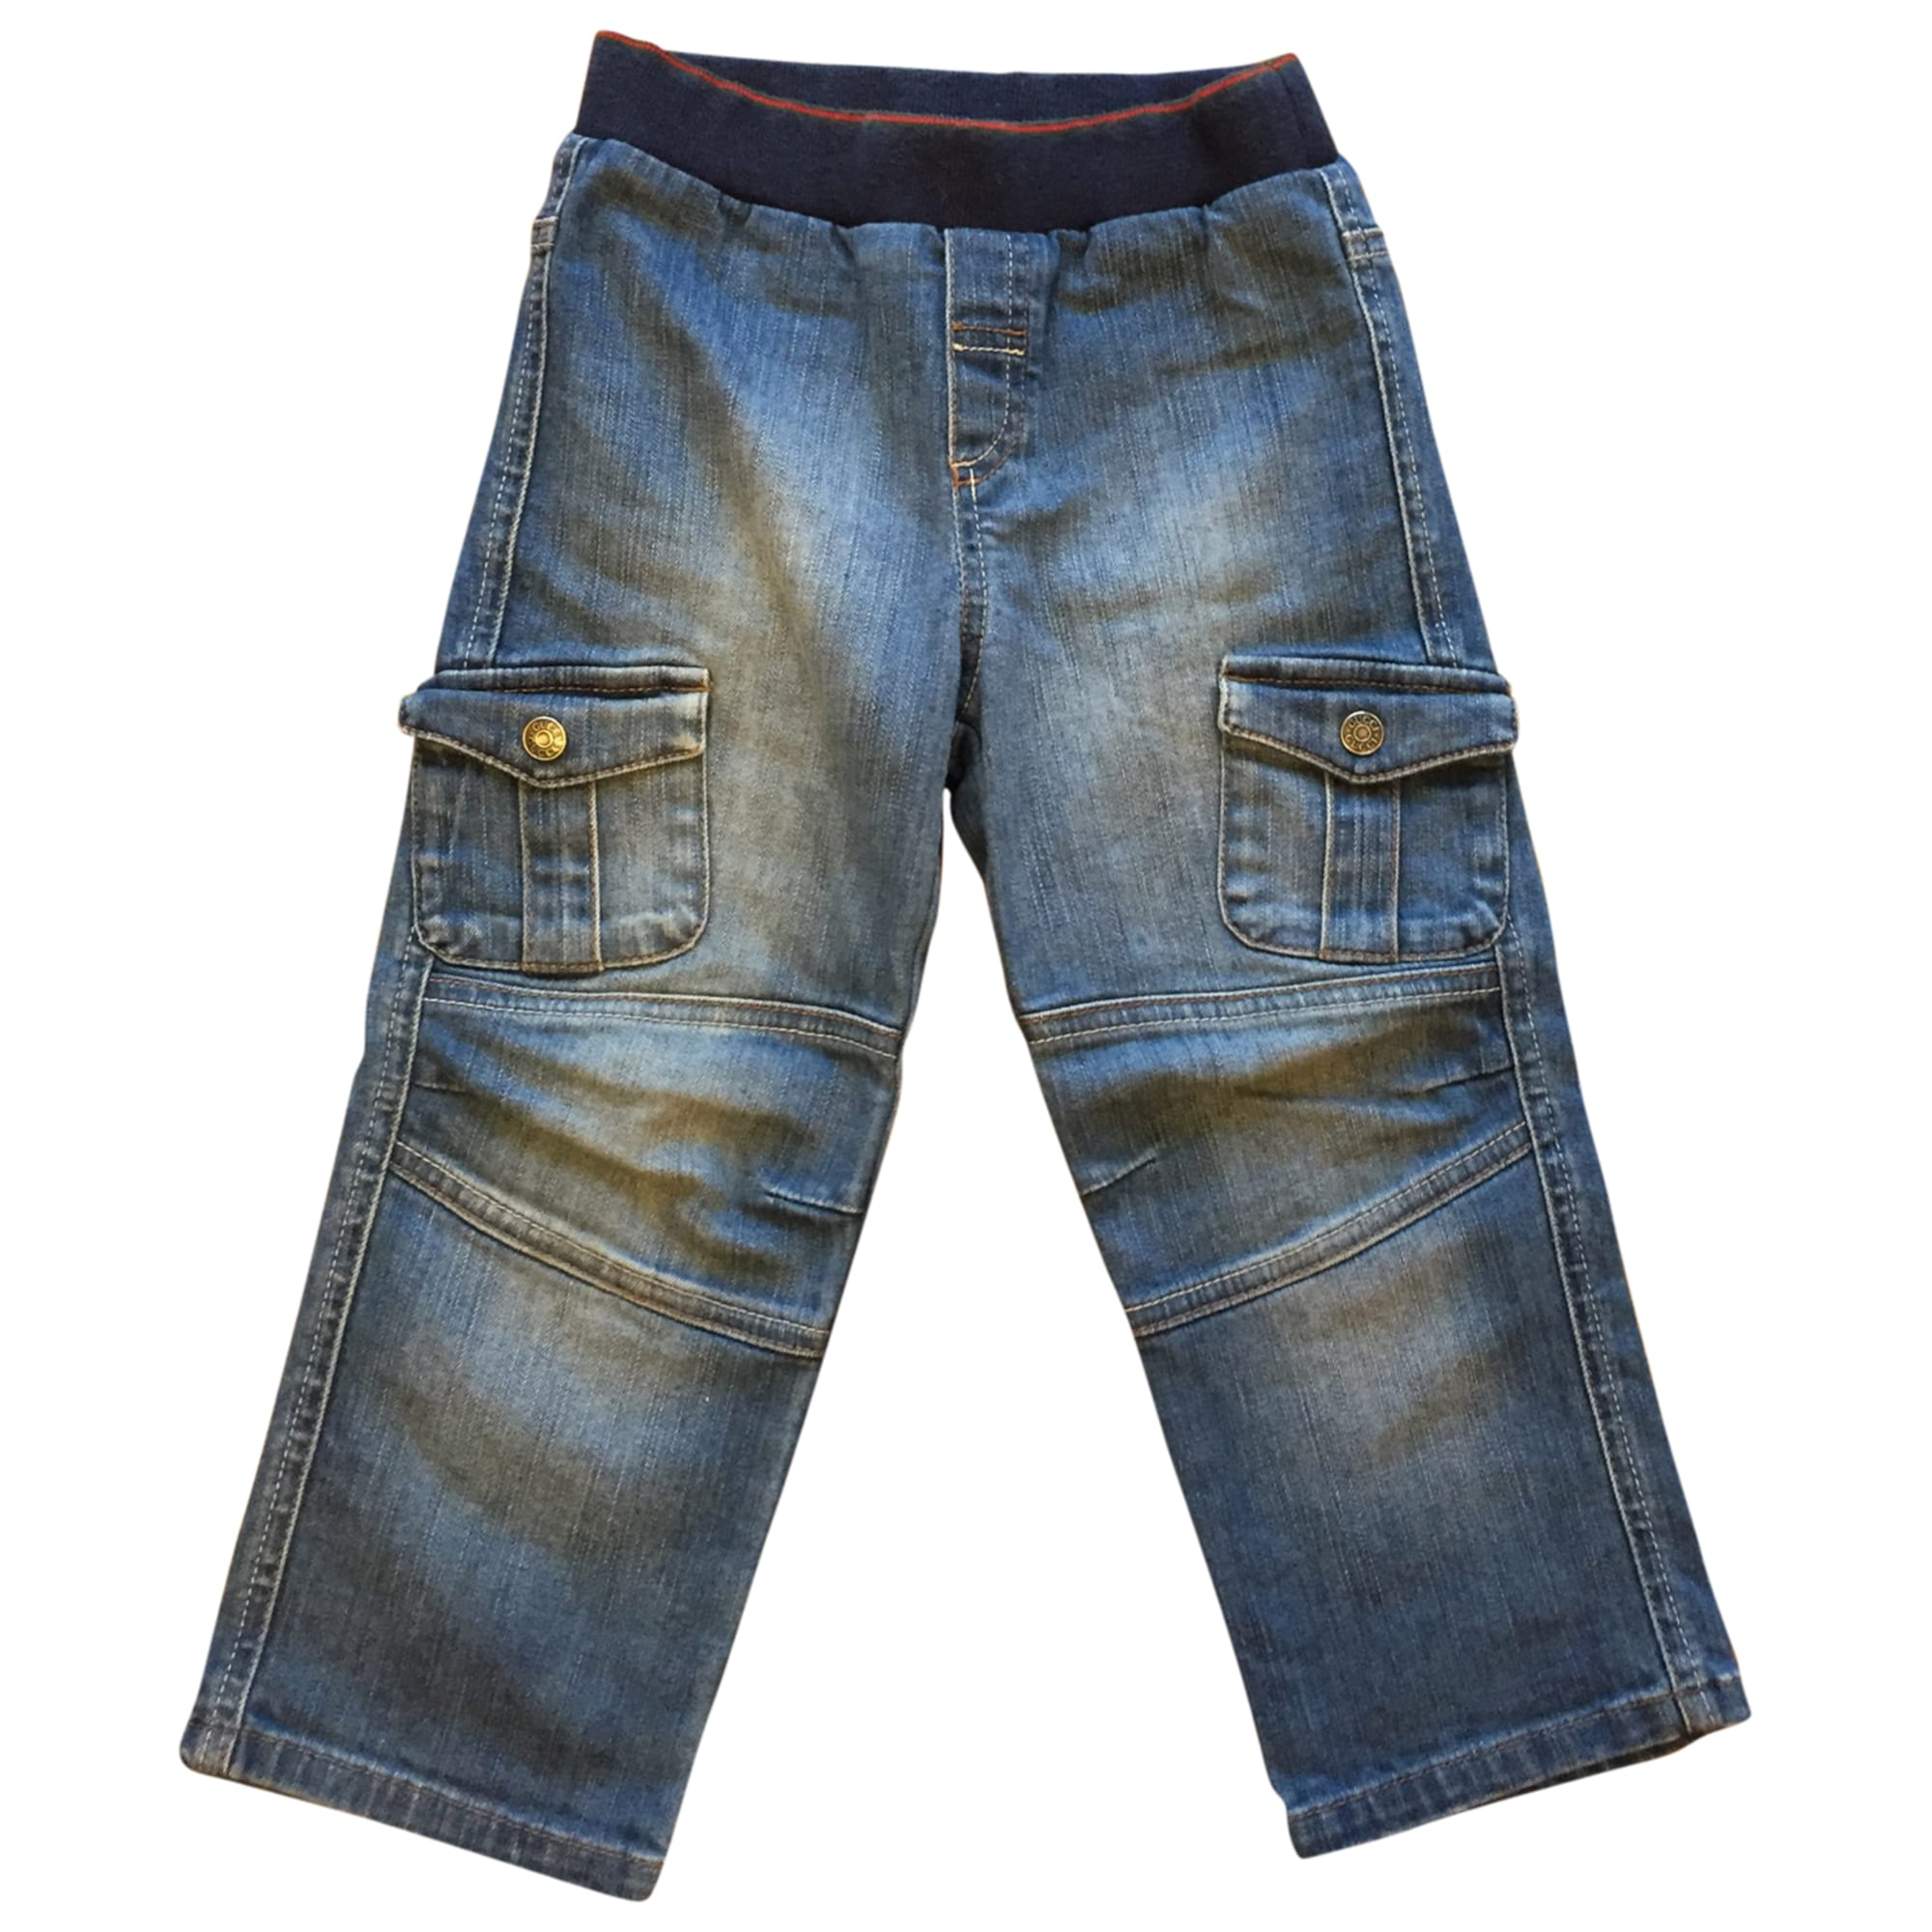 Straight Leg Jeans GUCCI Blue, navy, turquoise